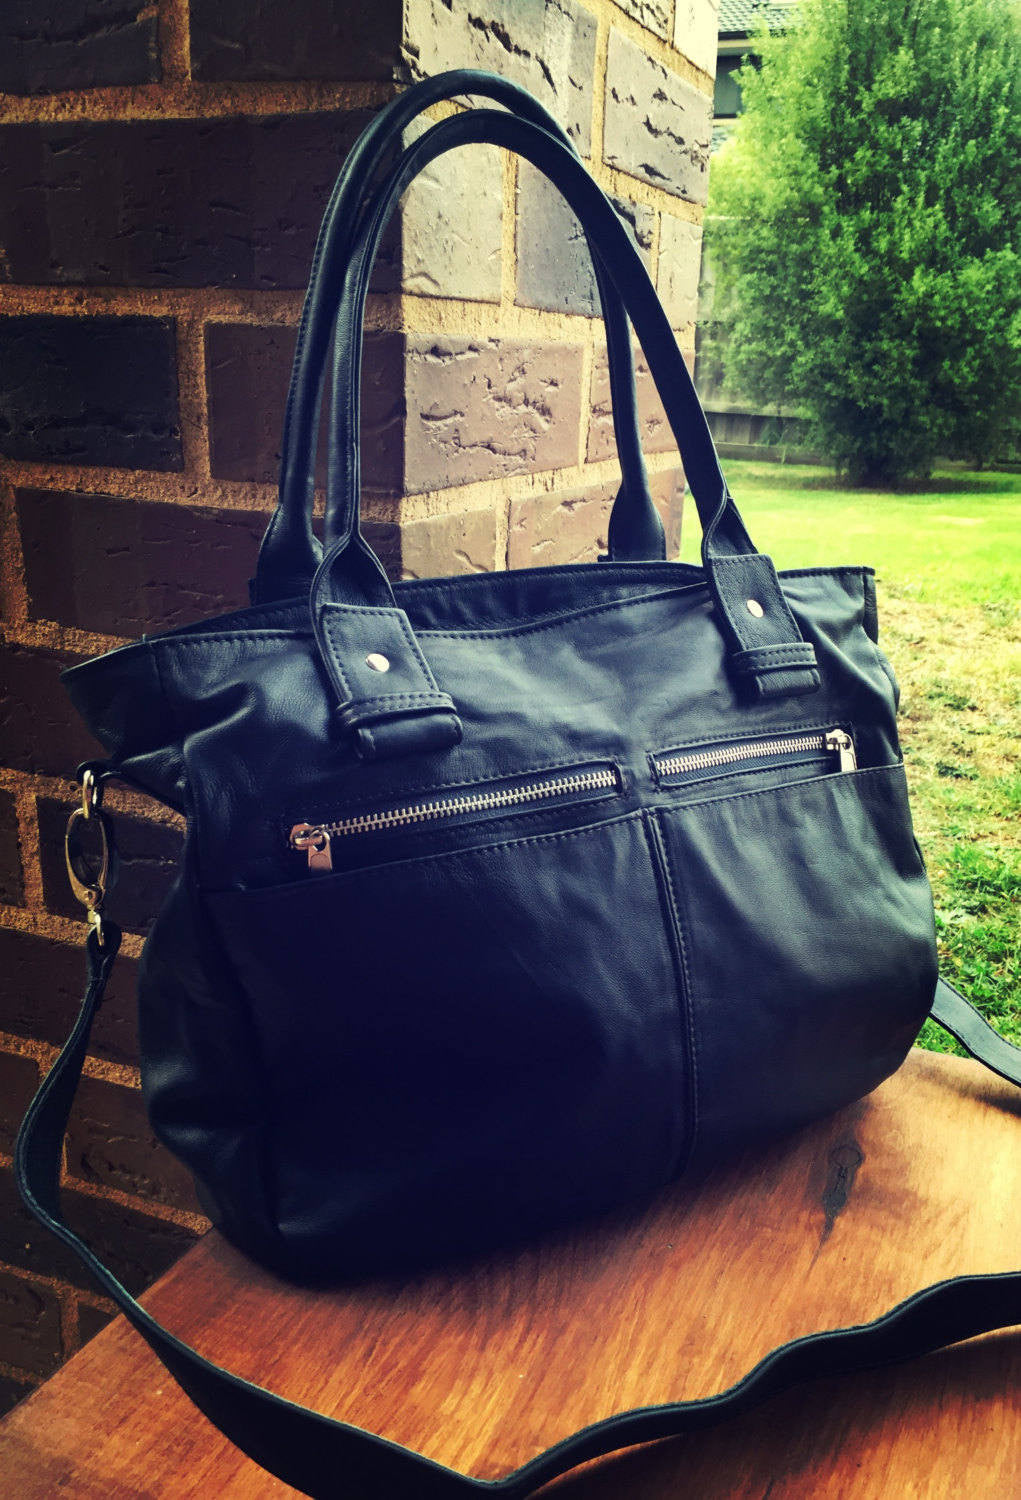 The Envoy - Work leather tote bag.